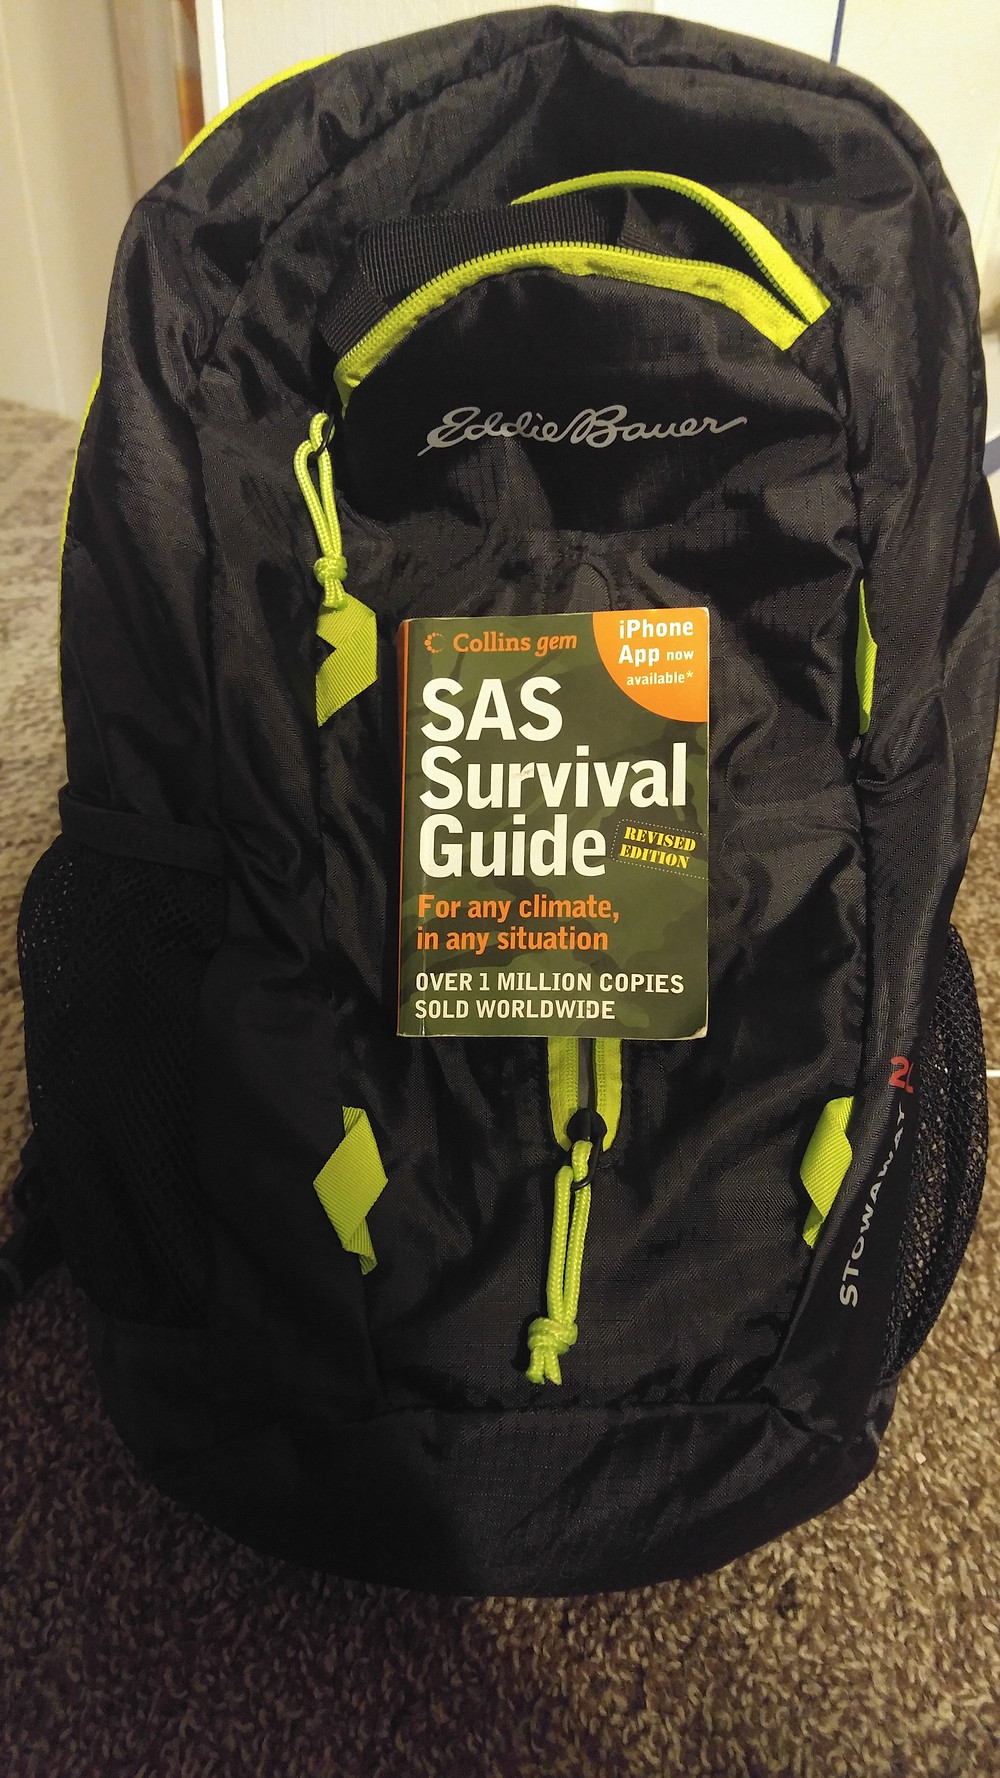 SAS Survival Guide review